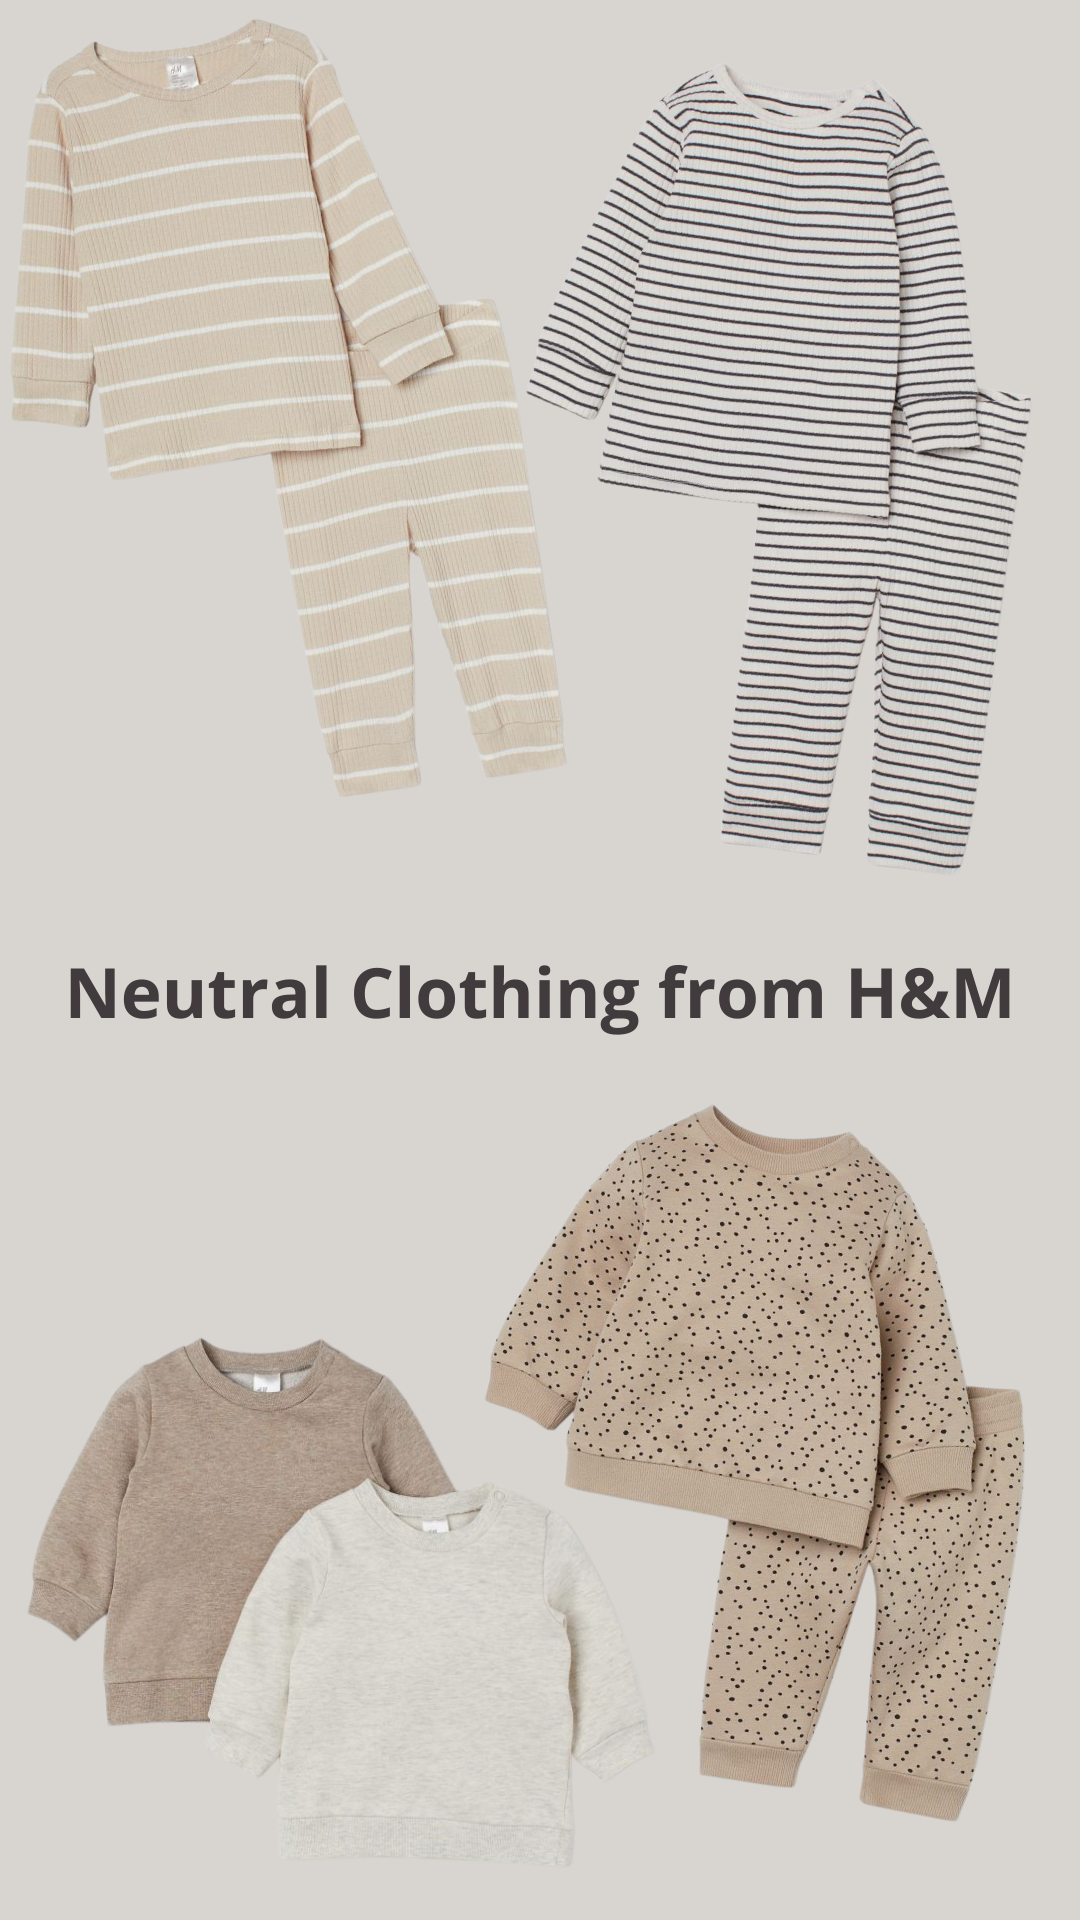 Neutral Kids Clothing I Ordered from H&M